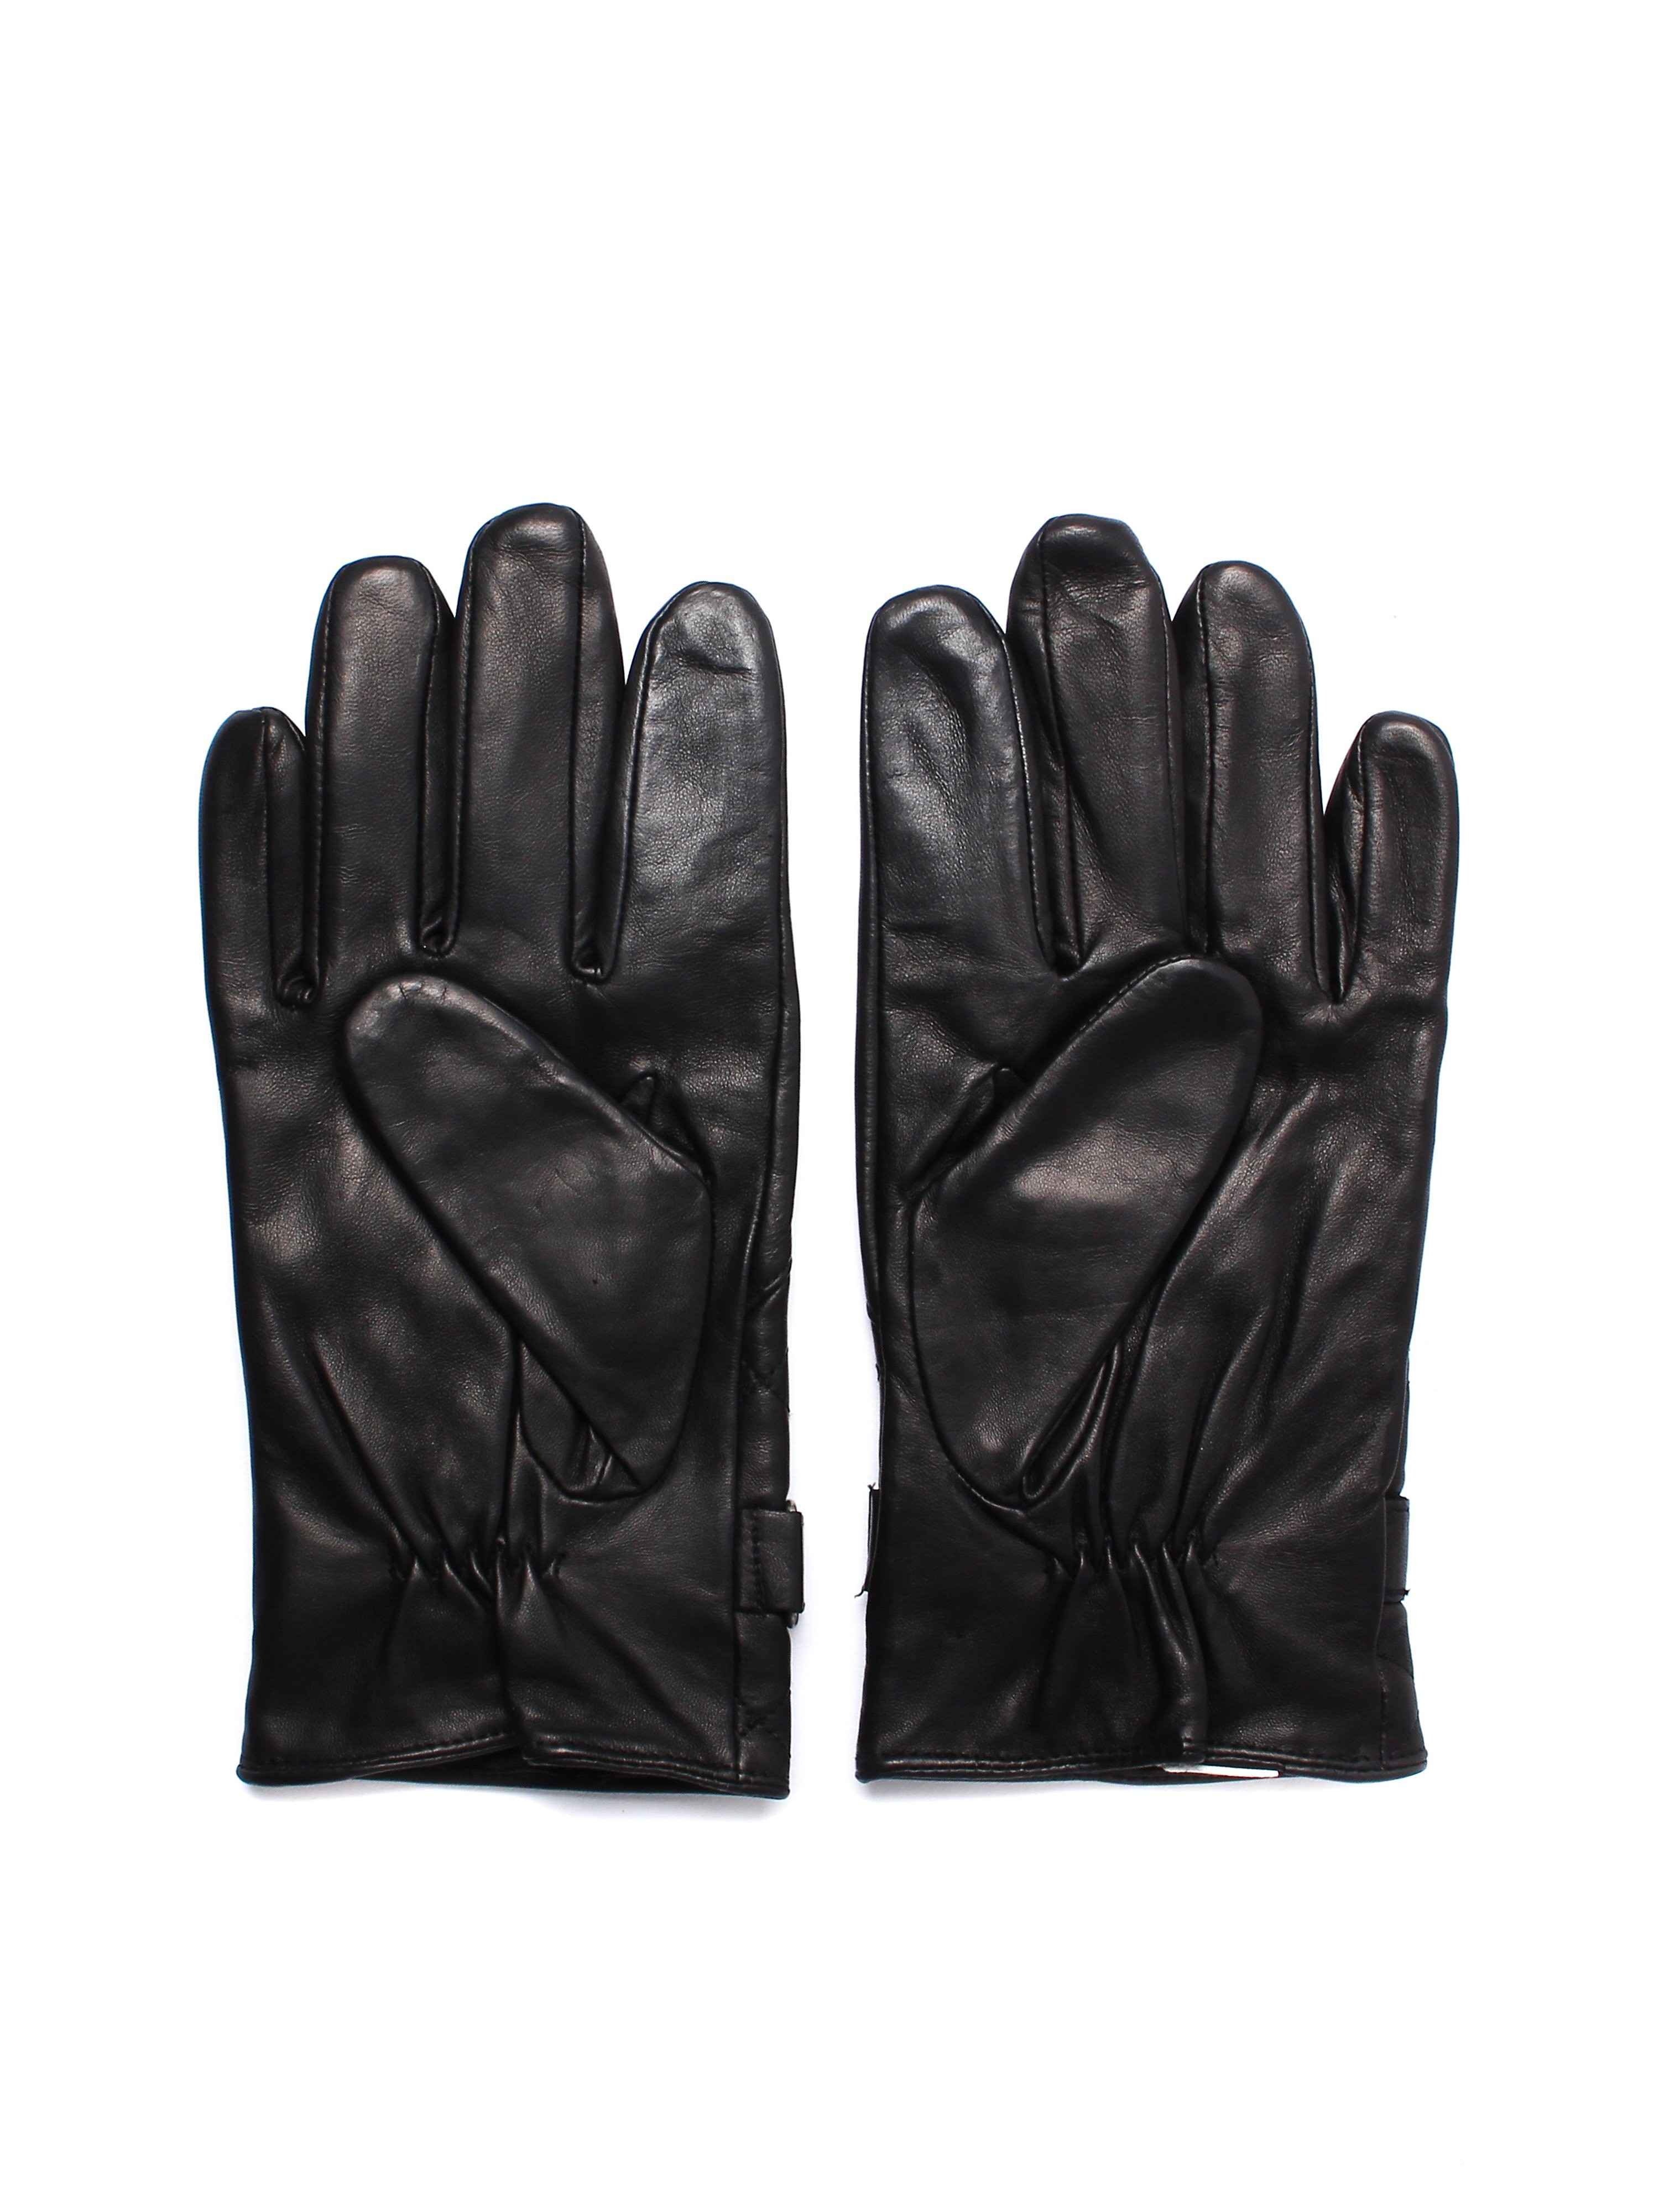 Timberland Men's Gloves - Black Leather